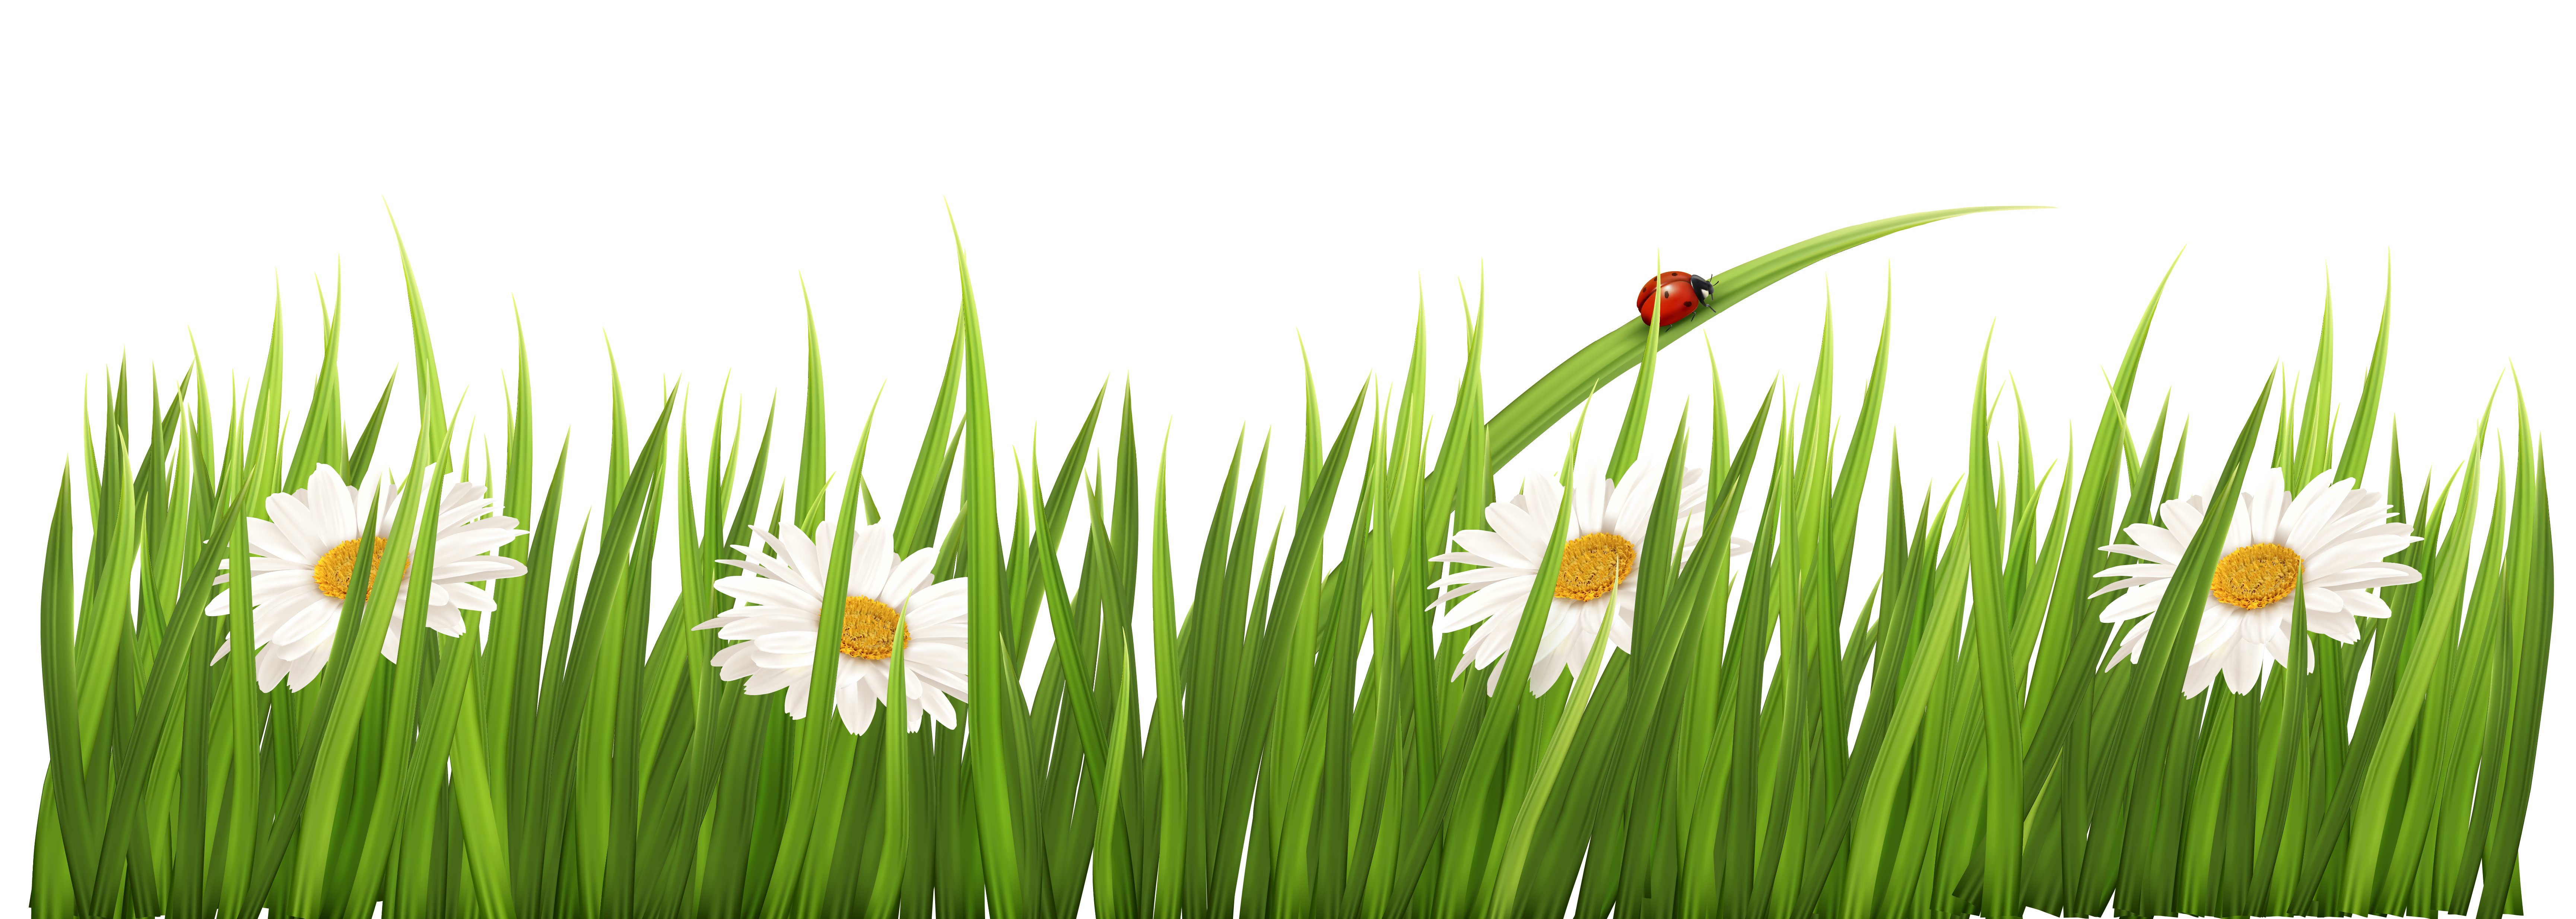 Wheatgrass Meadow Commodity Computer Wallpaper.